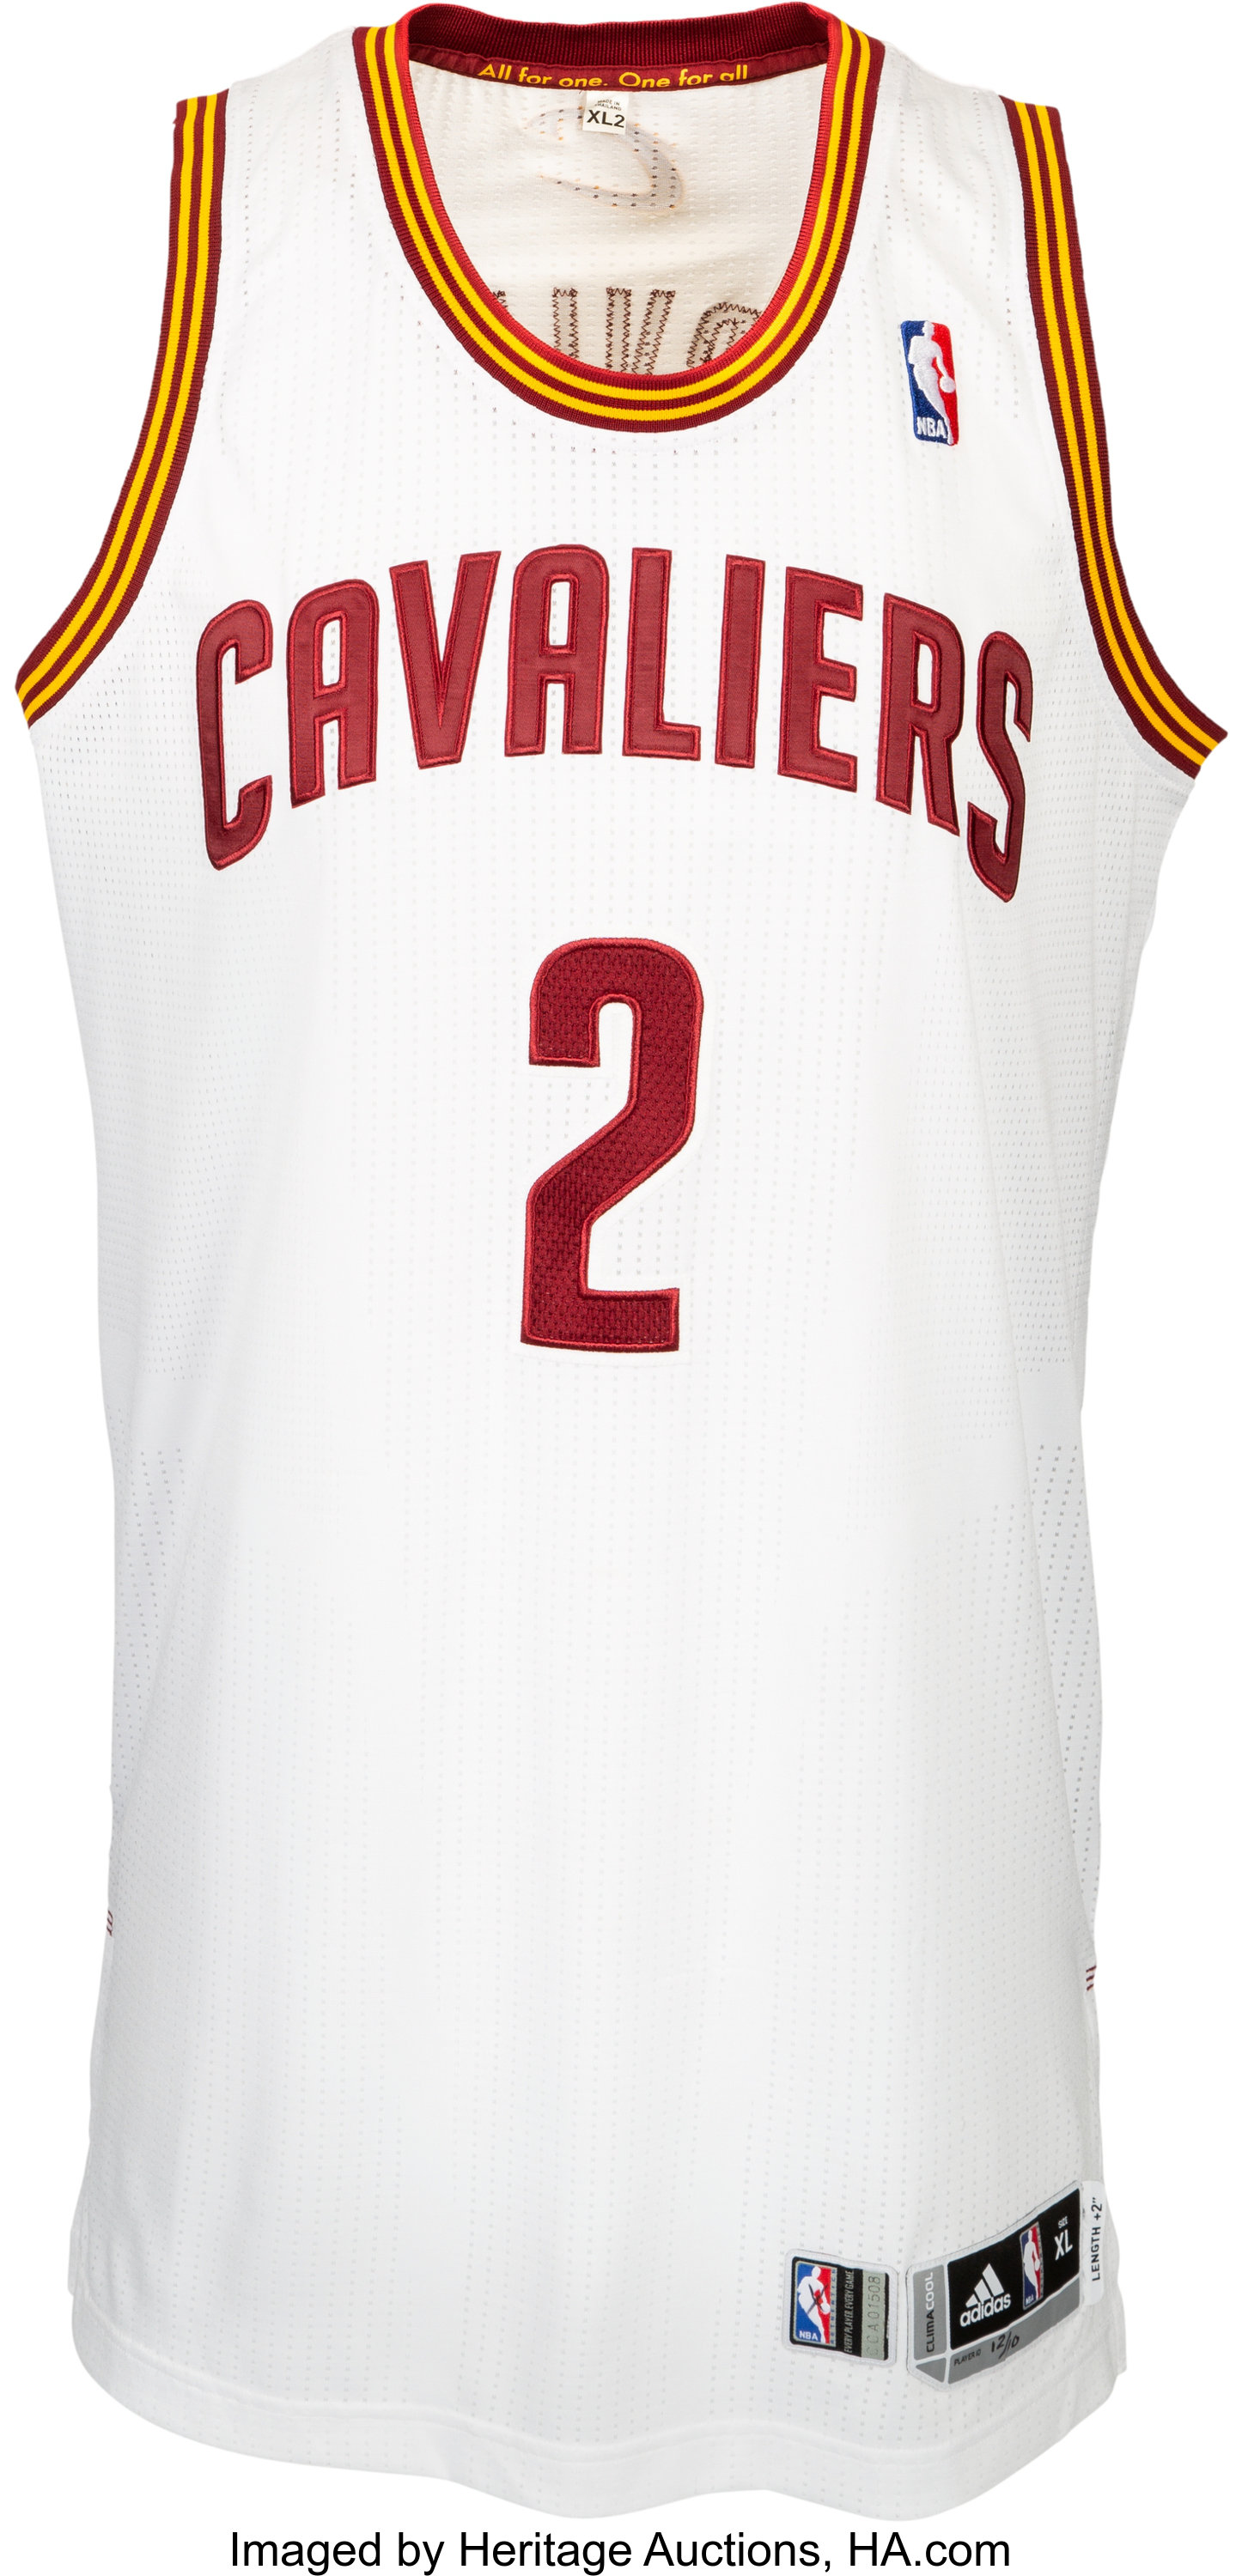 check out 9963e 0e2cb 2013-14 Kyrie Irving Game Worn Cleveland Cavaliers Jersey 12 ...